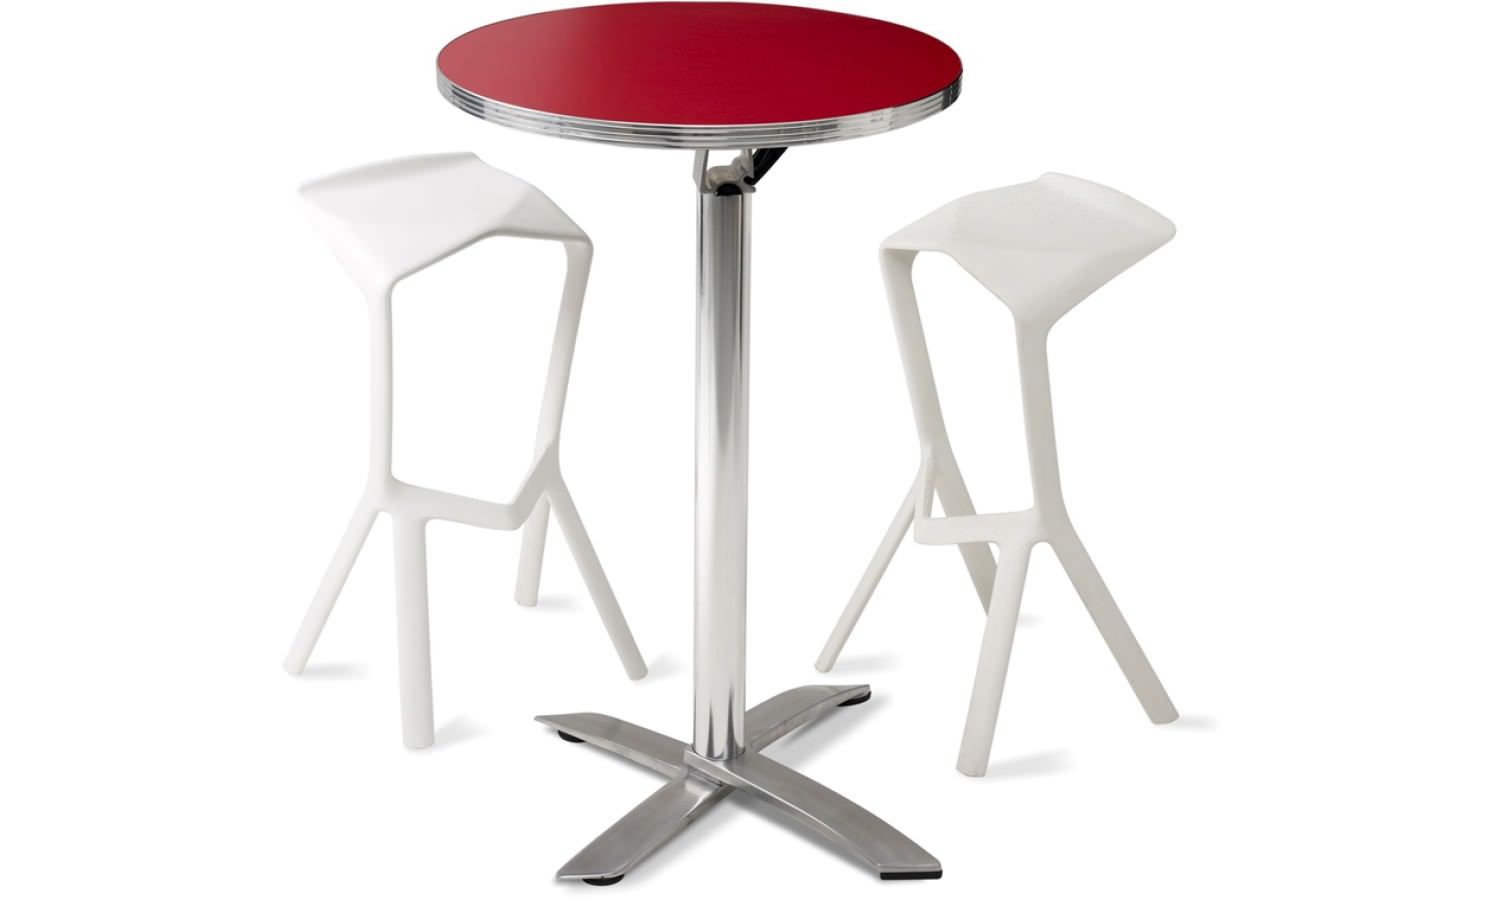 bar table chairs chair cover hire in london tall tables a space saving dining furniture for small